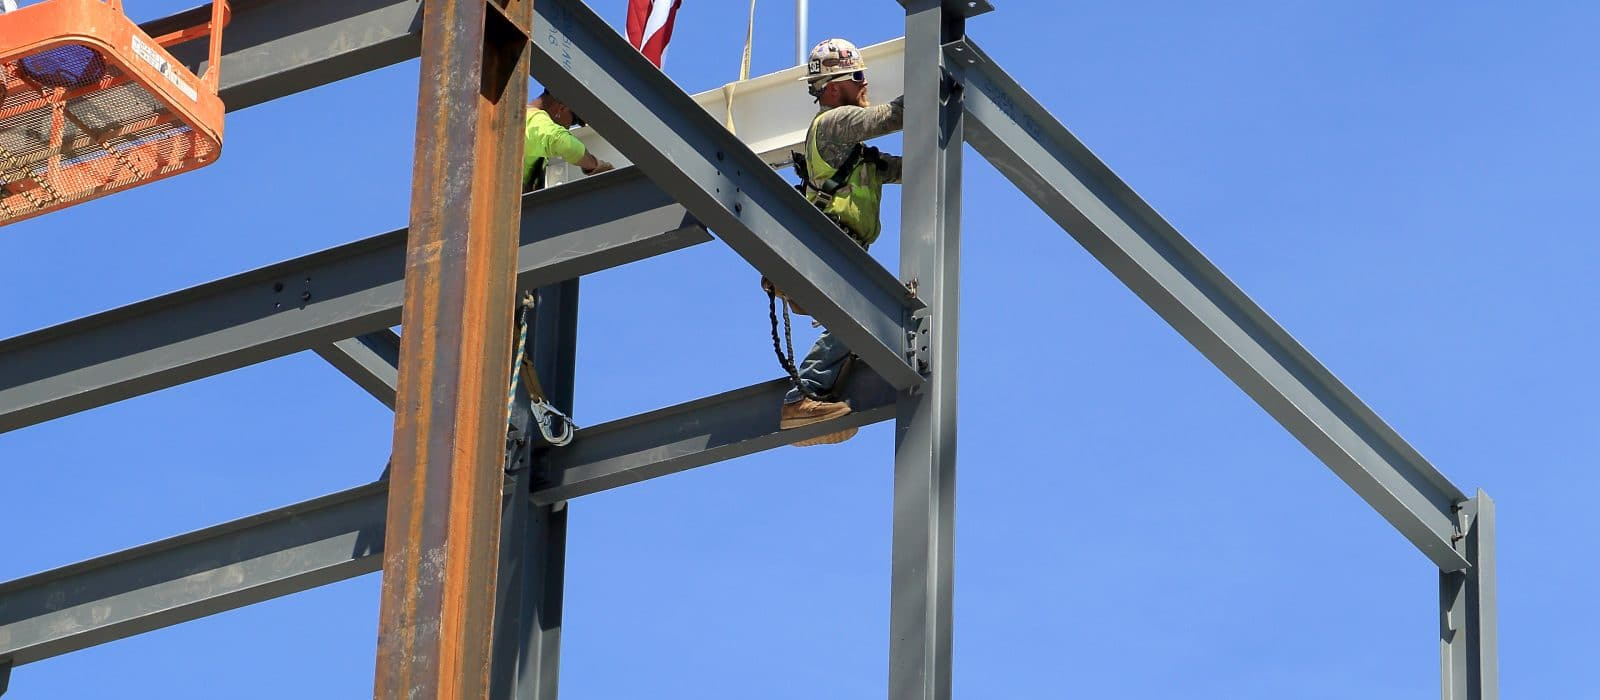 PSU- Agricultural Engineering Building steel frame with American flag